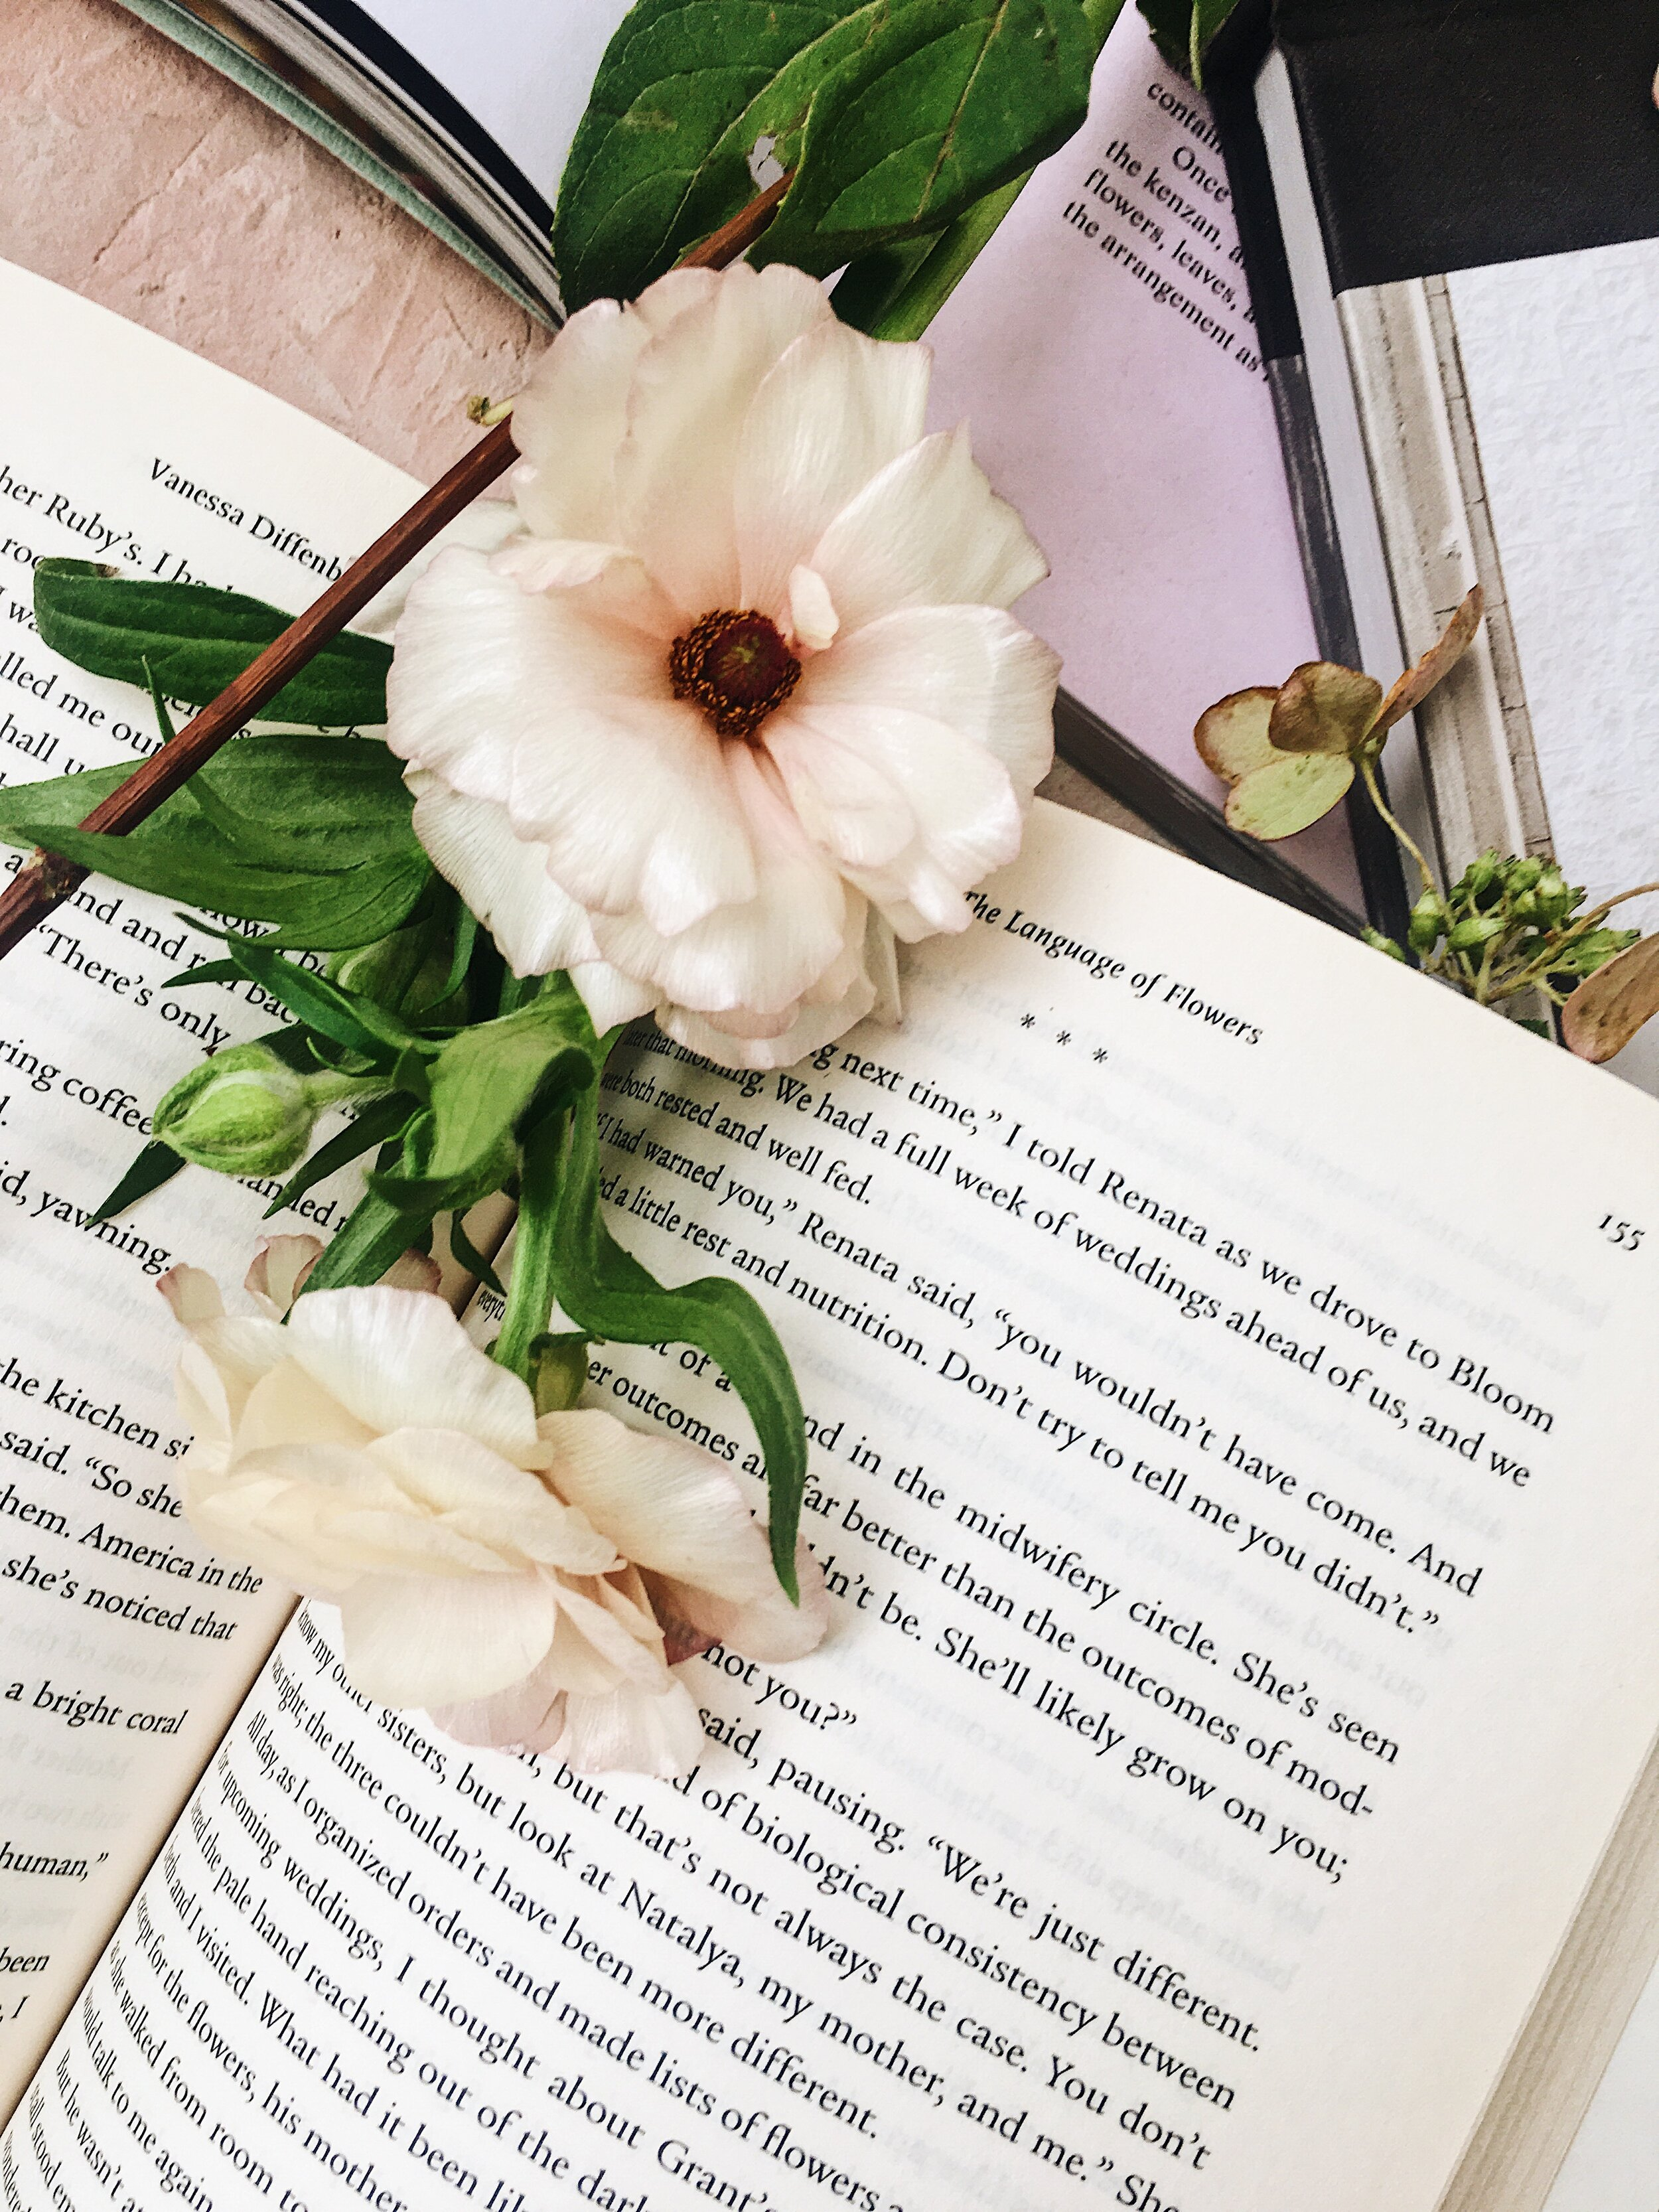 Staff Picks Our Favorite Flower And Business Books